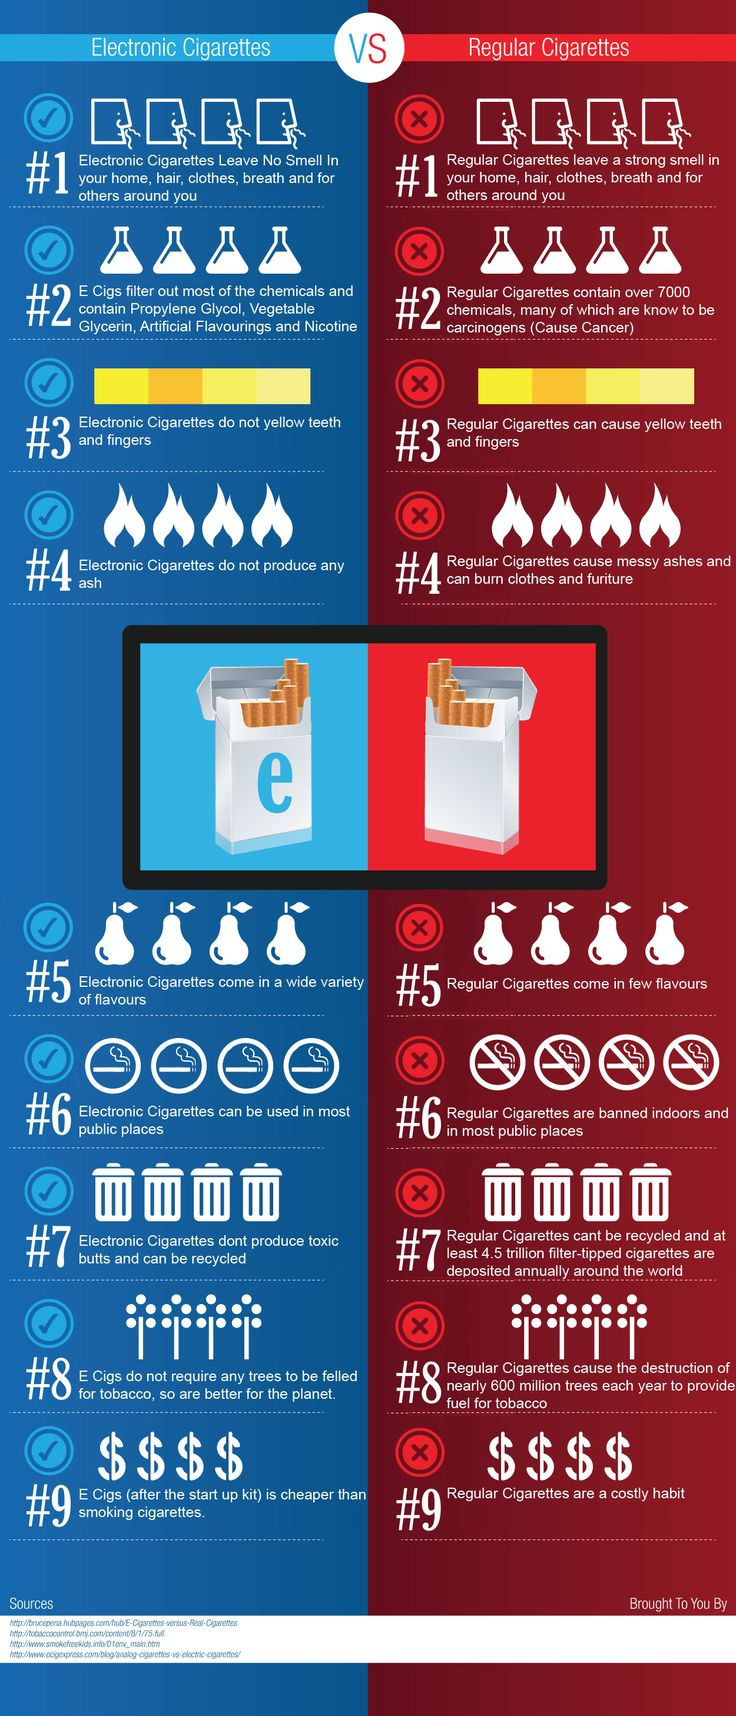 Electronic Cigarettes are the modern way to quit smoking...but how do they compare to regular cigarettes?